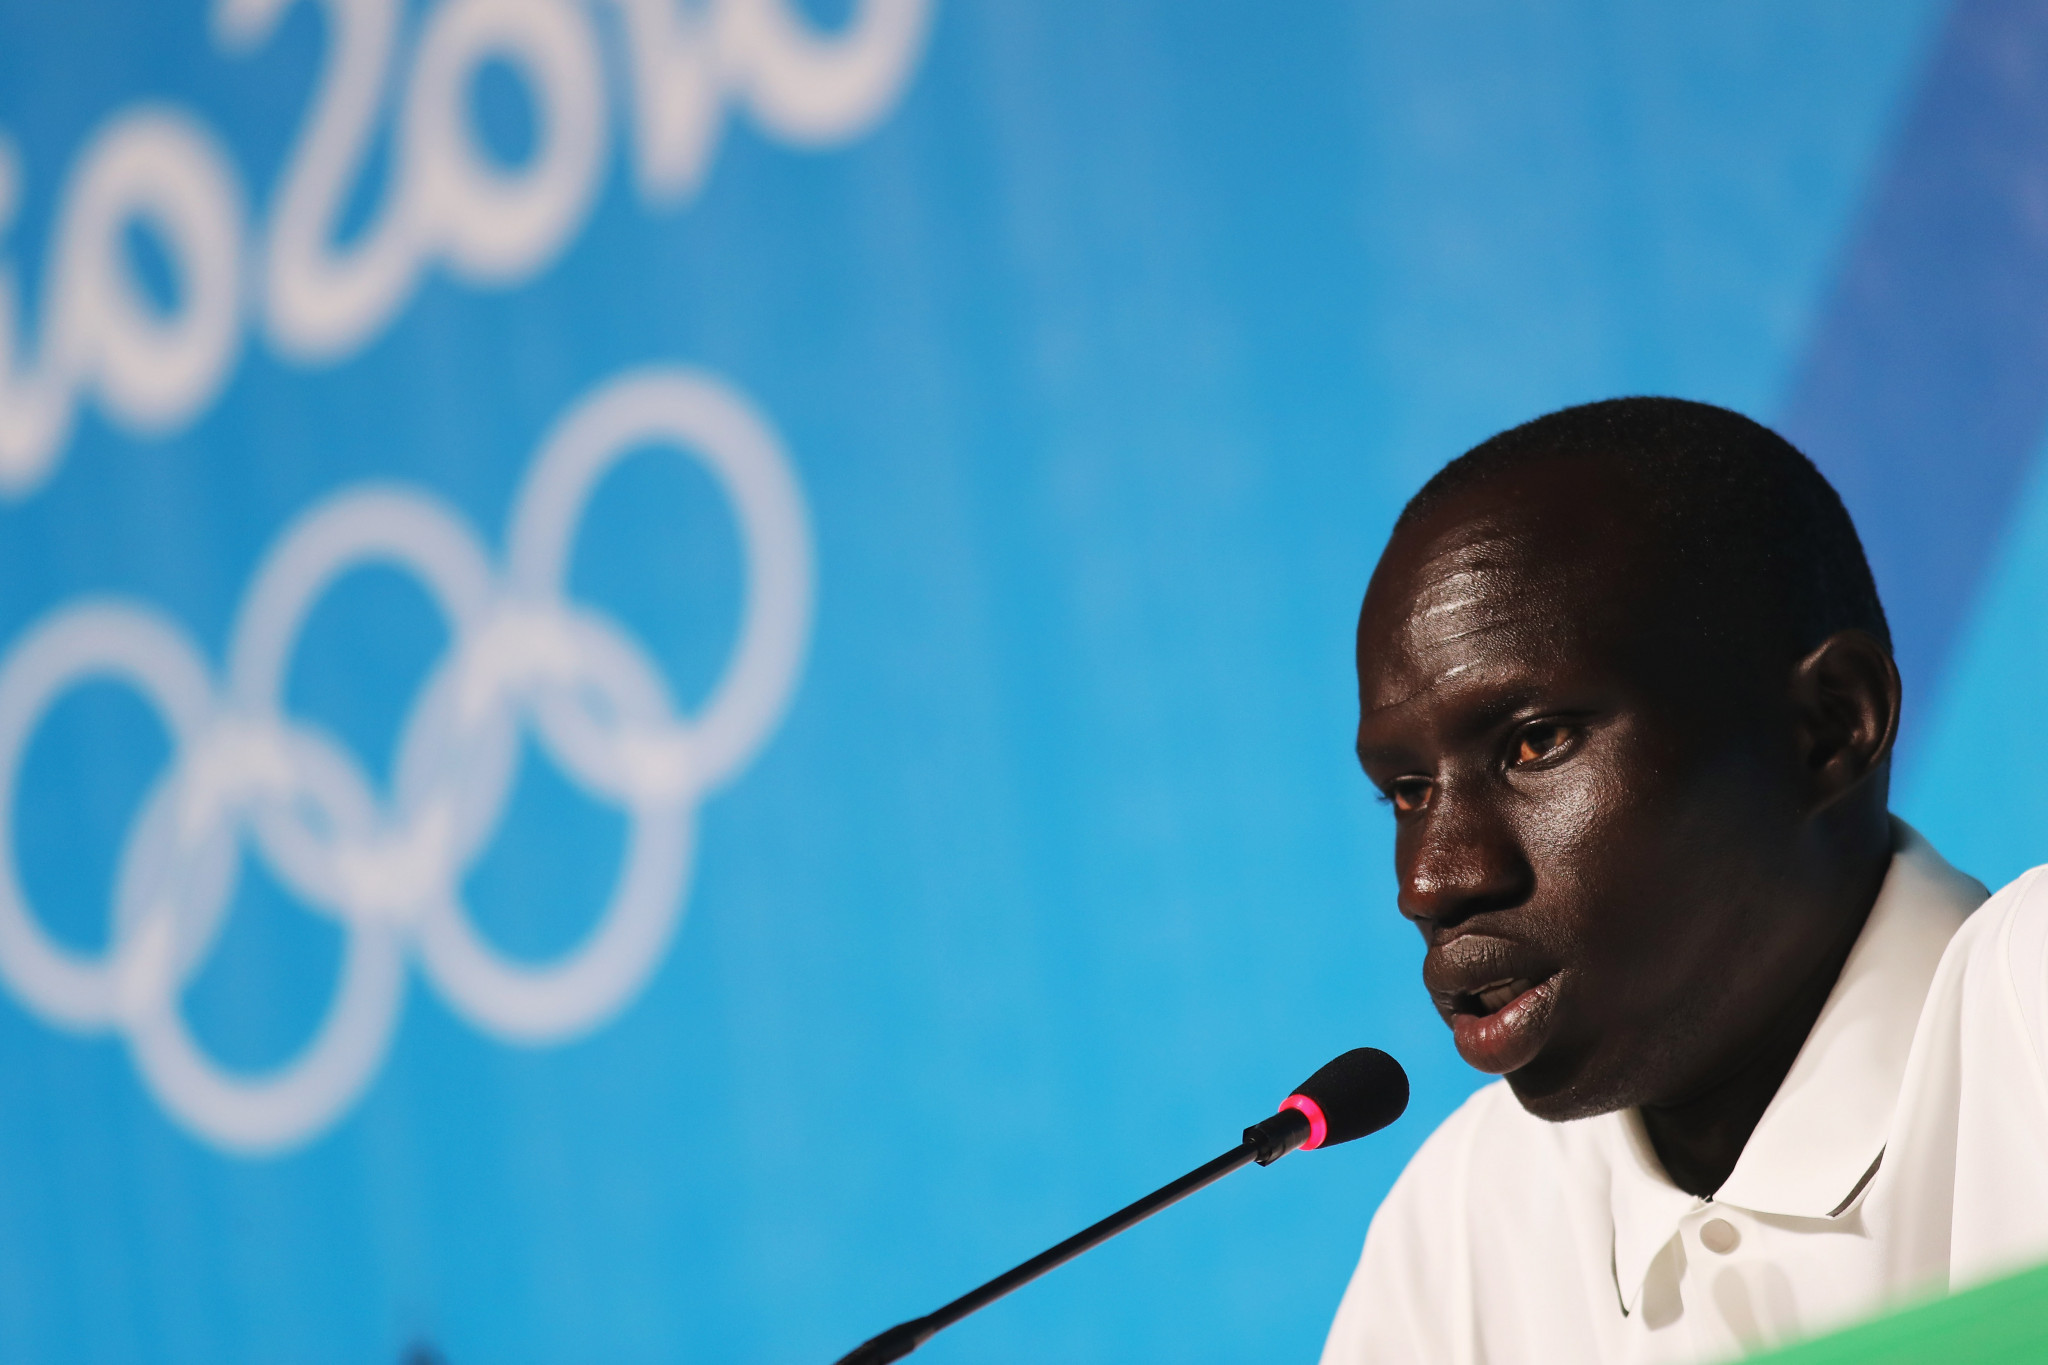 Yiech Pur Biel was one of 10 refugee athletes to compete at Rio 2016 ©Getty Images